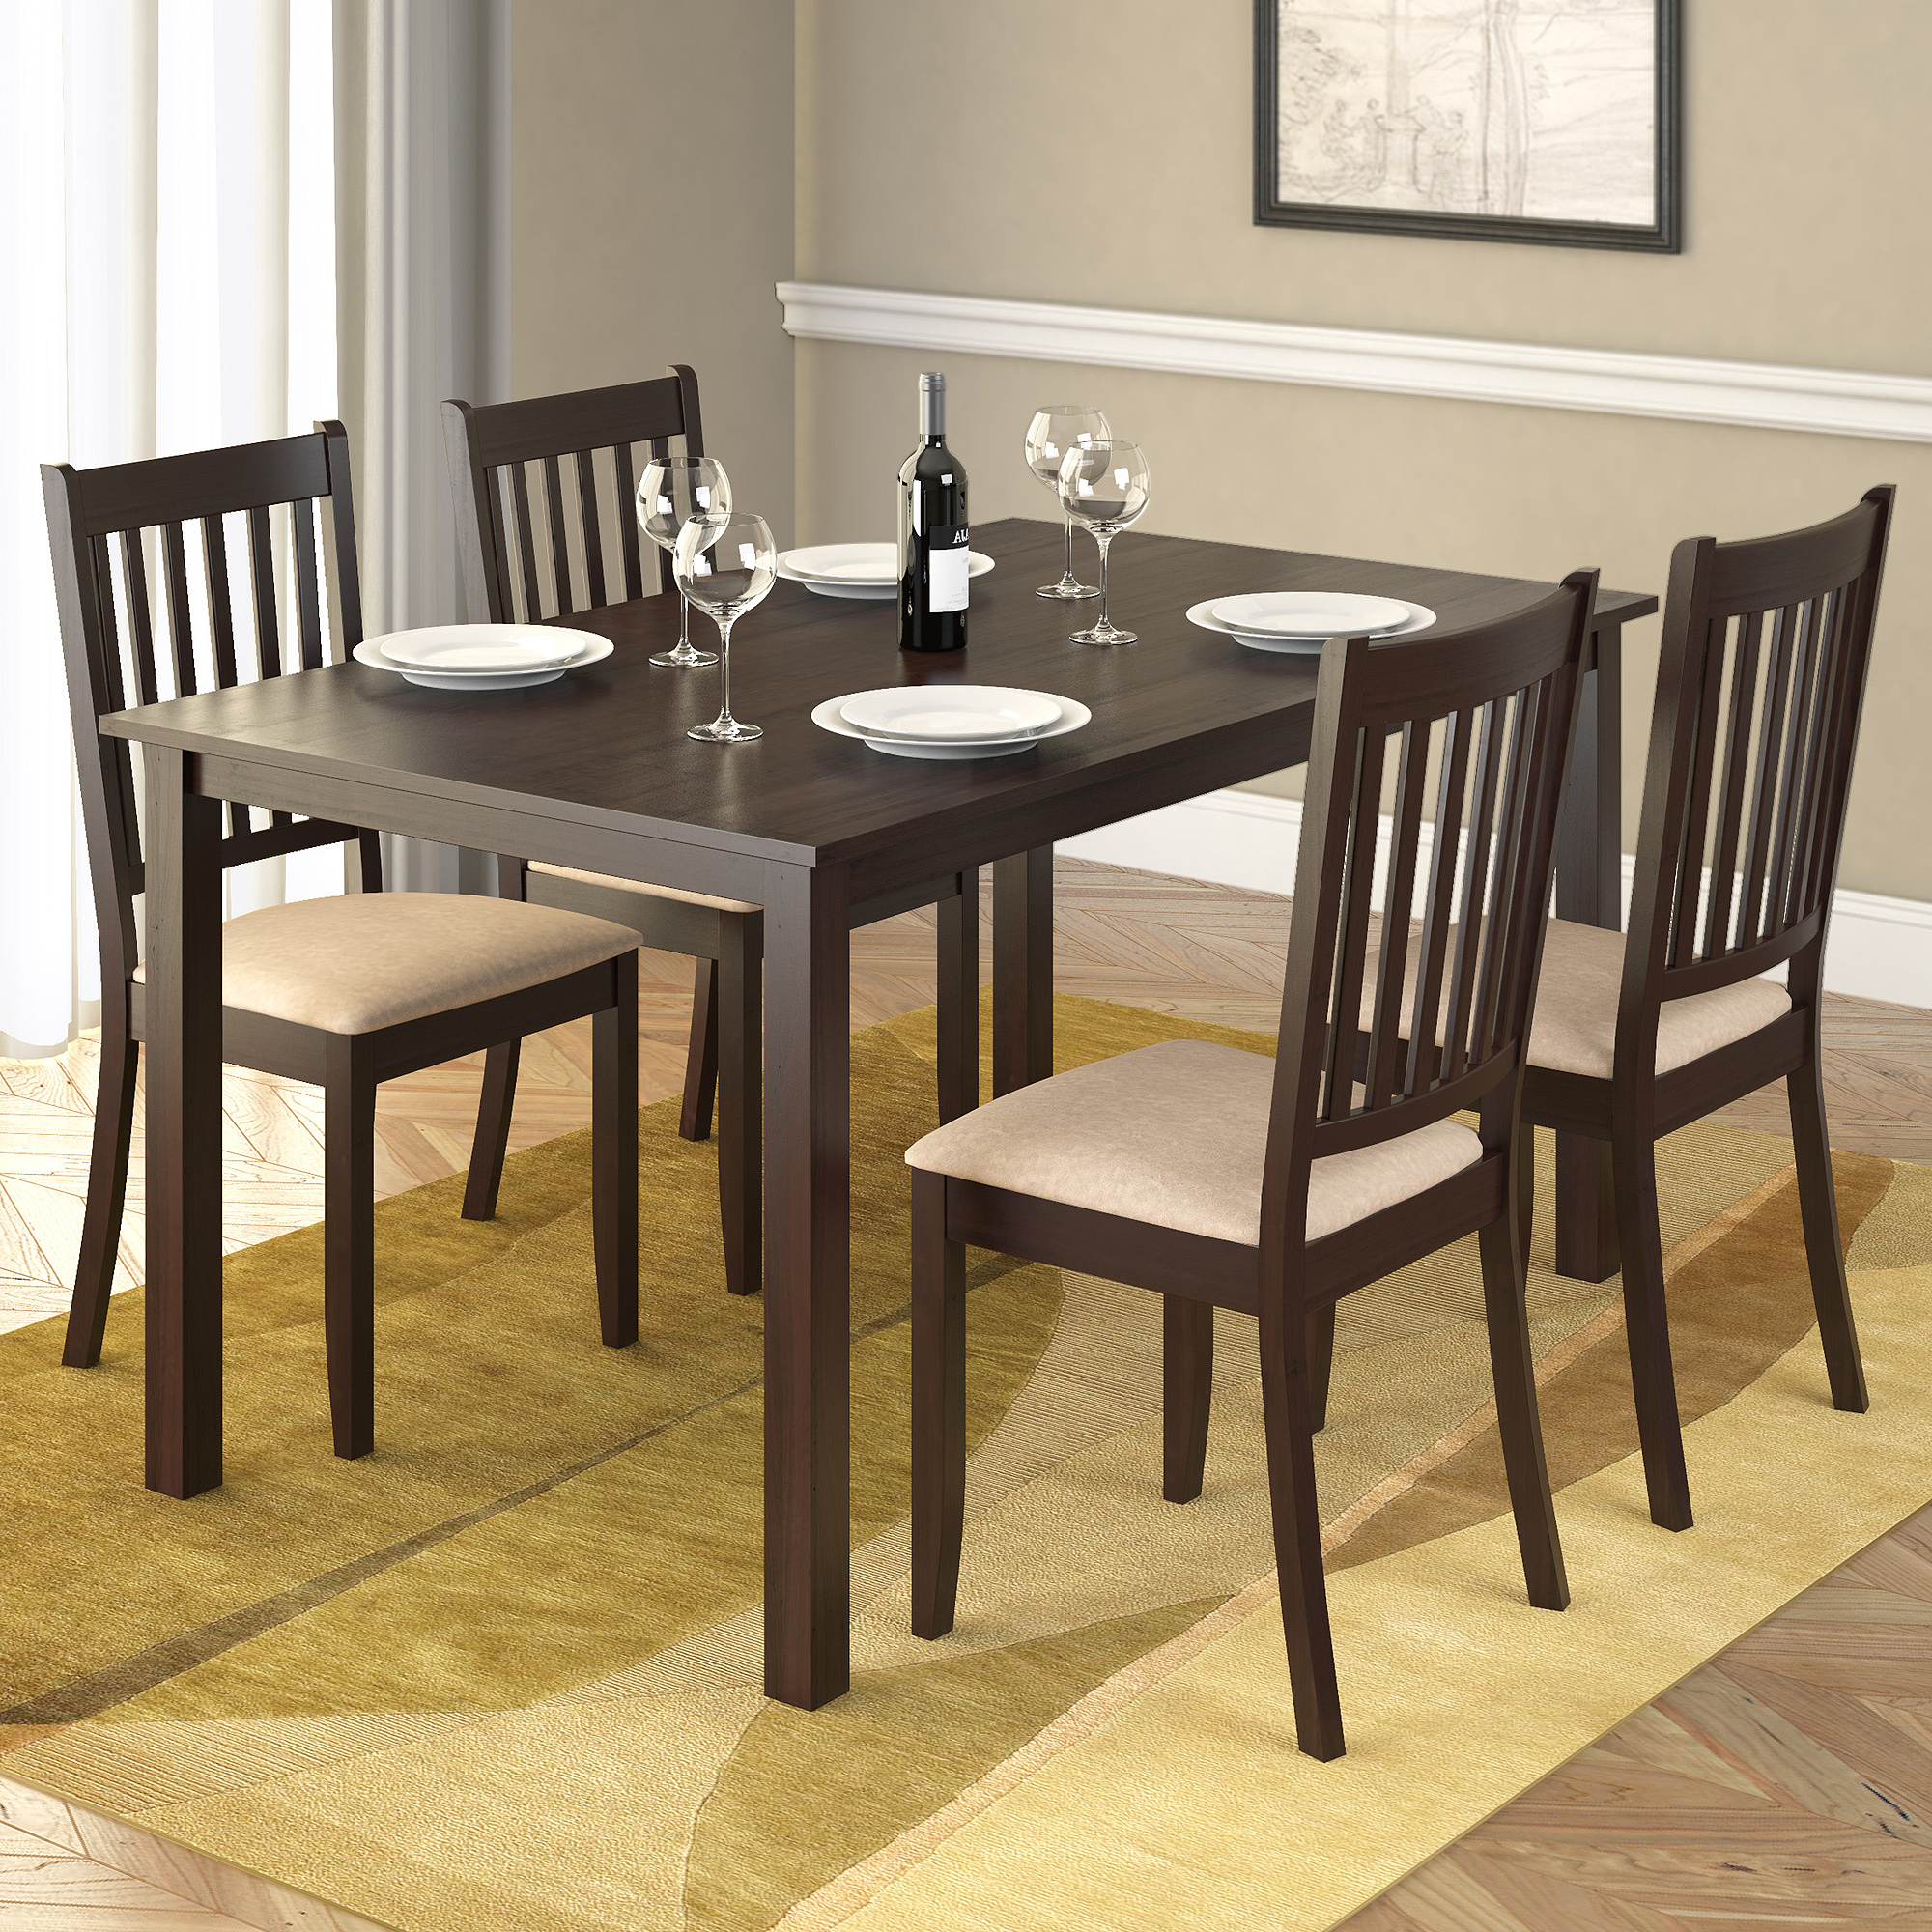 "Well Known Corliving Atwood 55"" Dining Table, Cappuccino – Walmart With Regard To Atwood Transitional Square Dining Tables (View 28 of 30)"